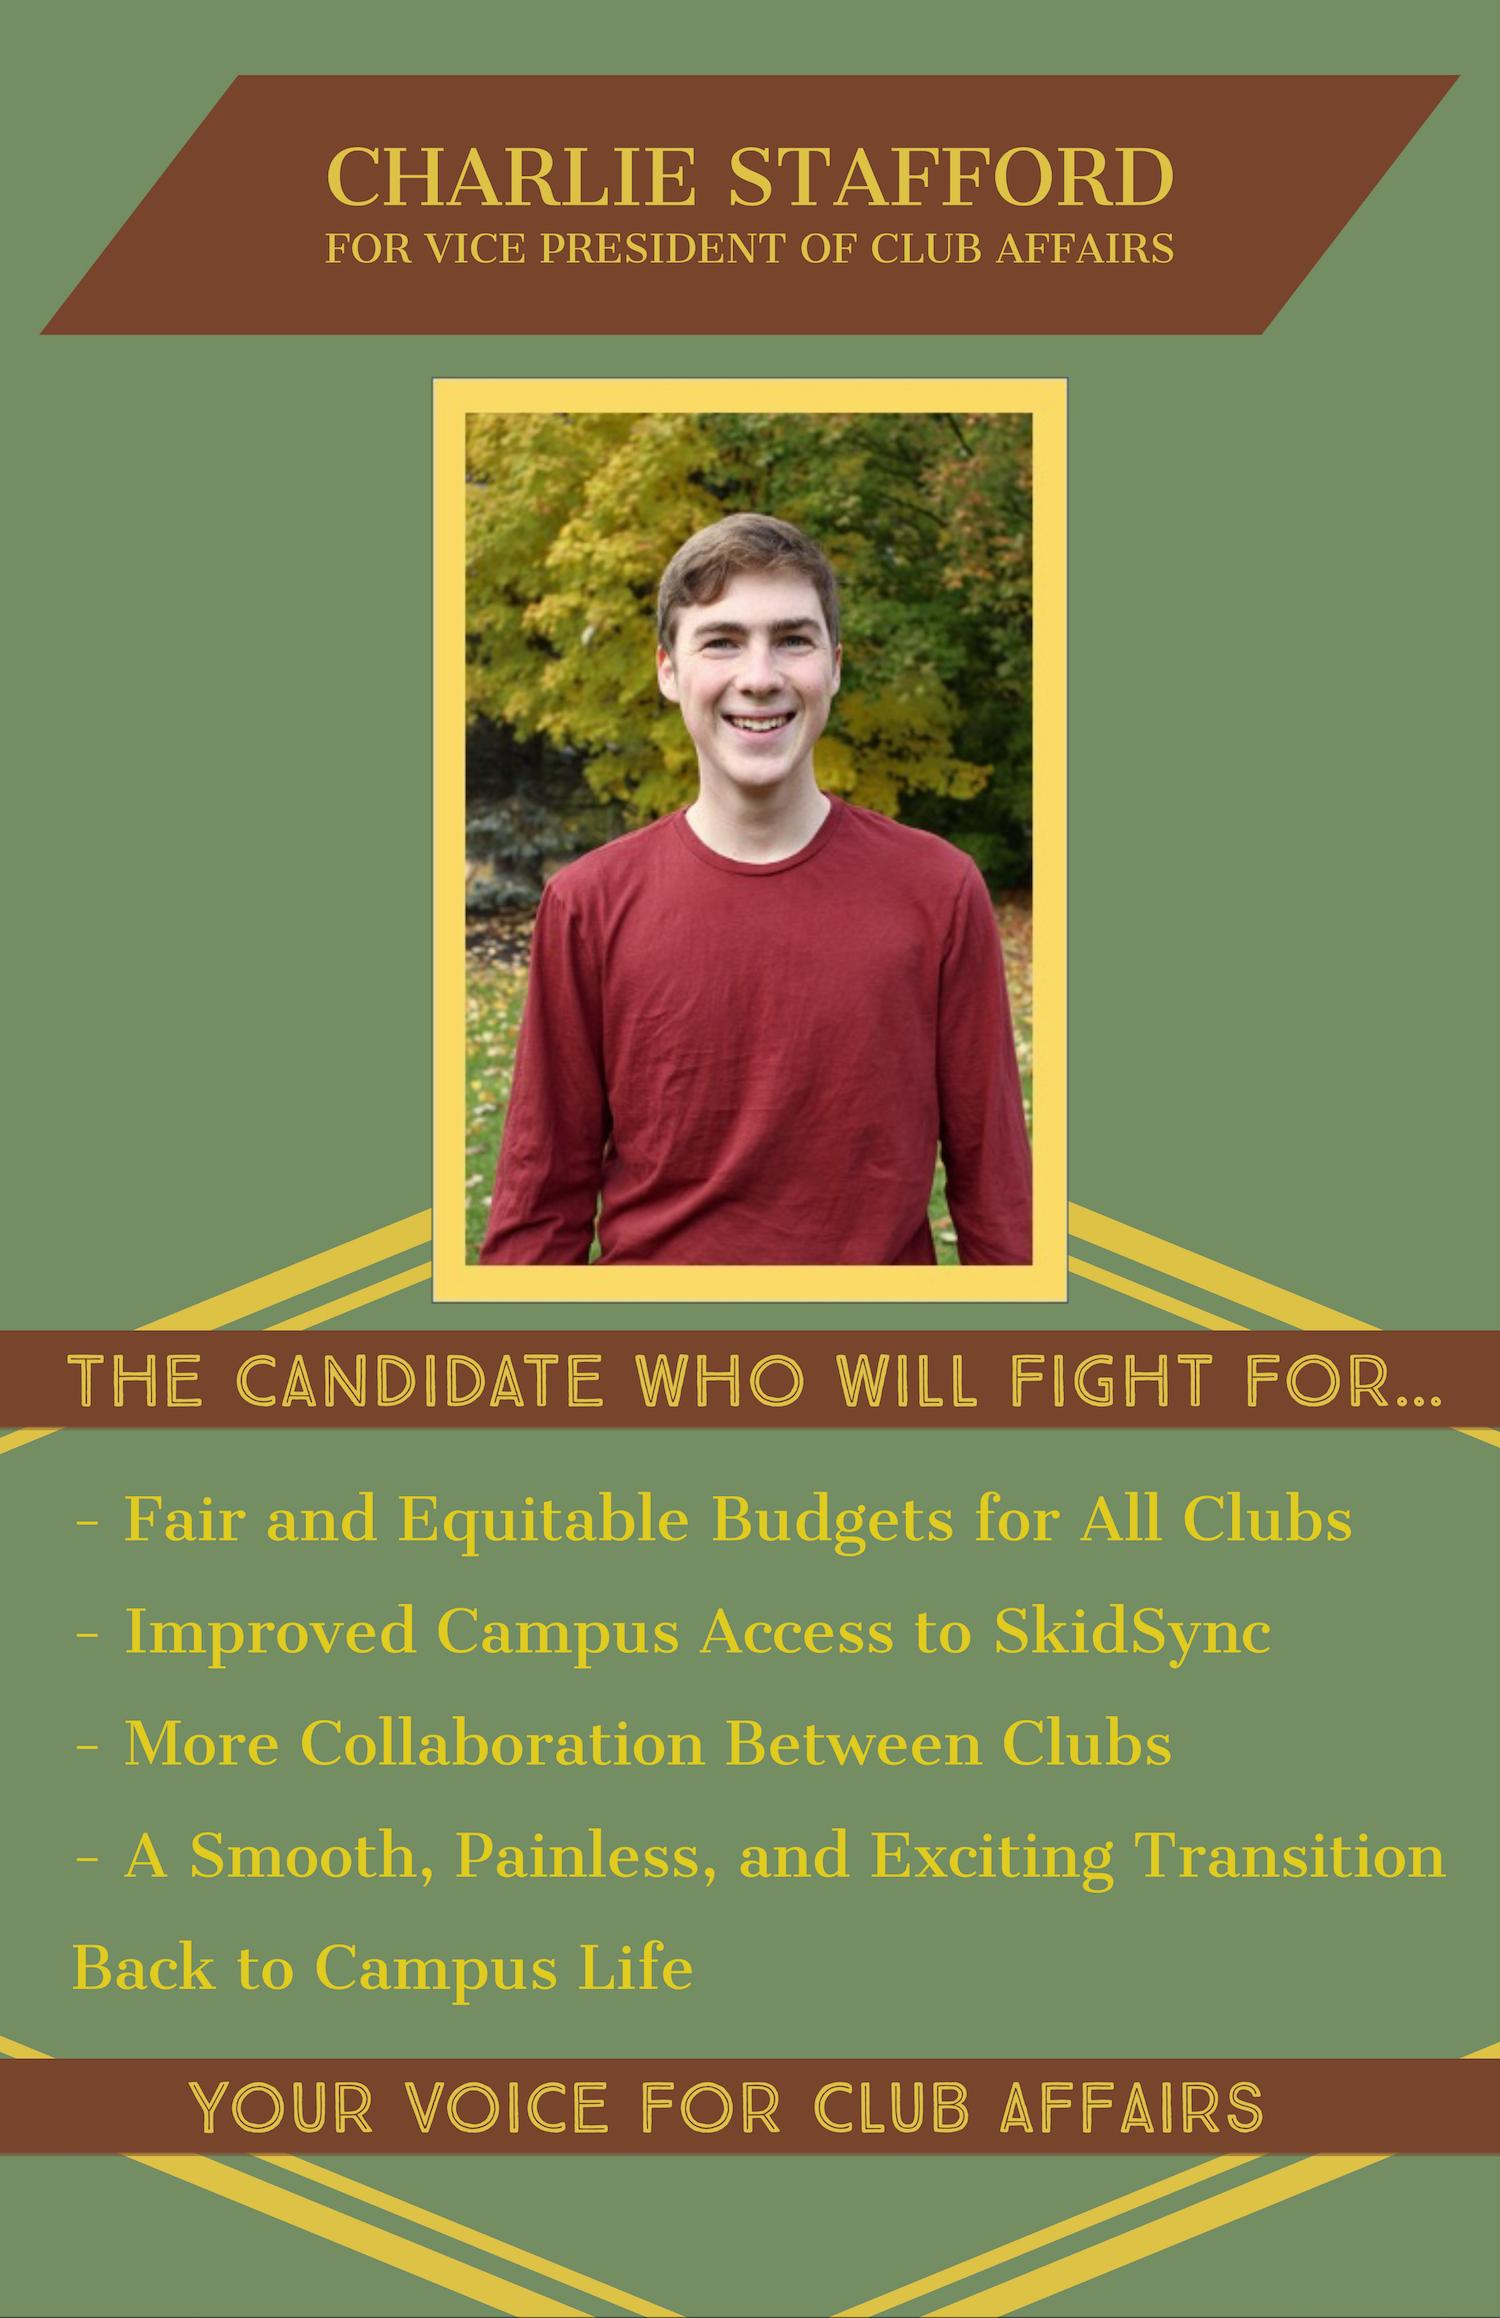 Charlie%20Stafford%20for%20Vice%20President%20for%20Club%20Affairs